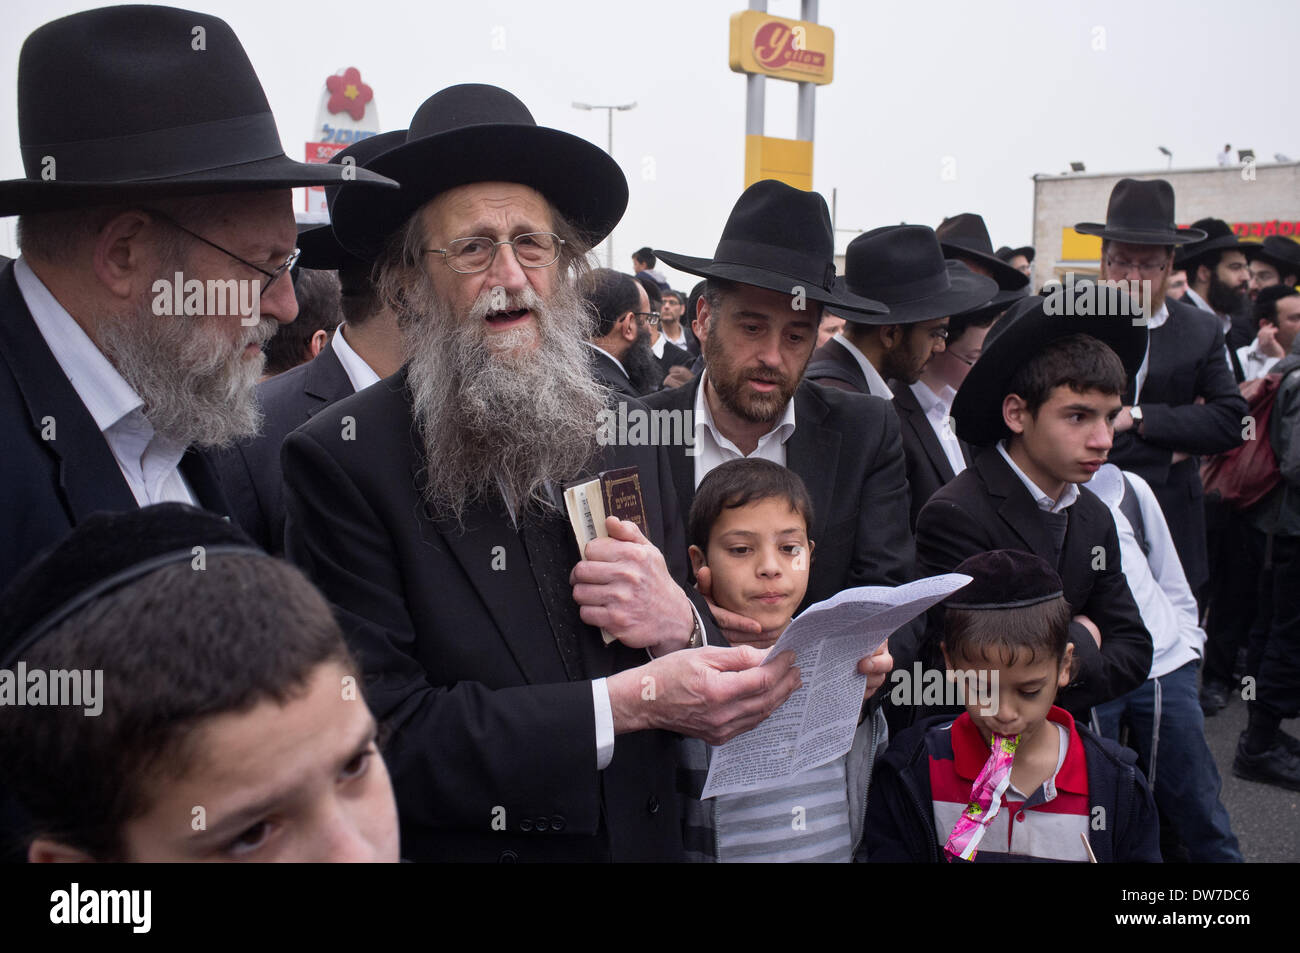 Haredi Jews In Israel: Hundreds Of Thousands Of Ultra-Orthodox Haredi Jews Stage